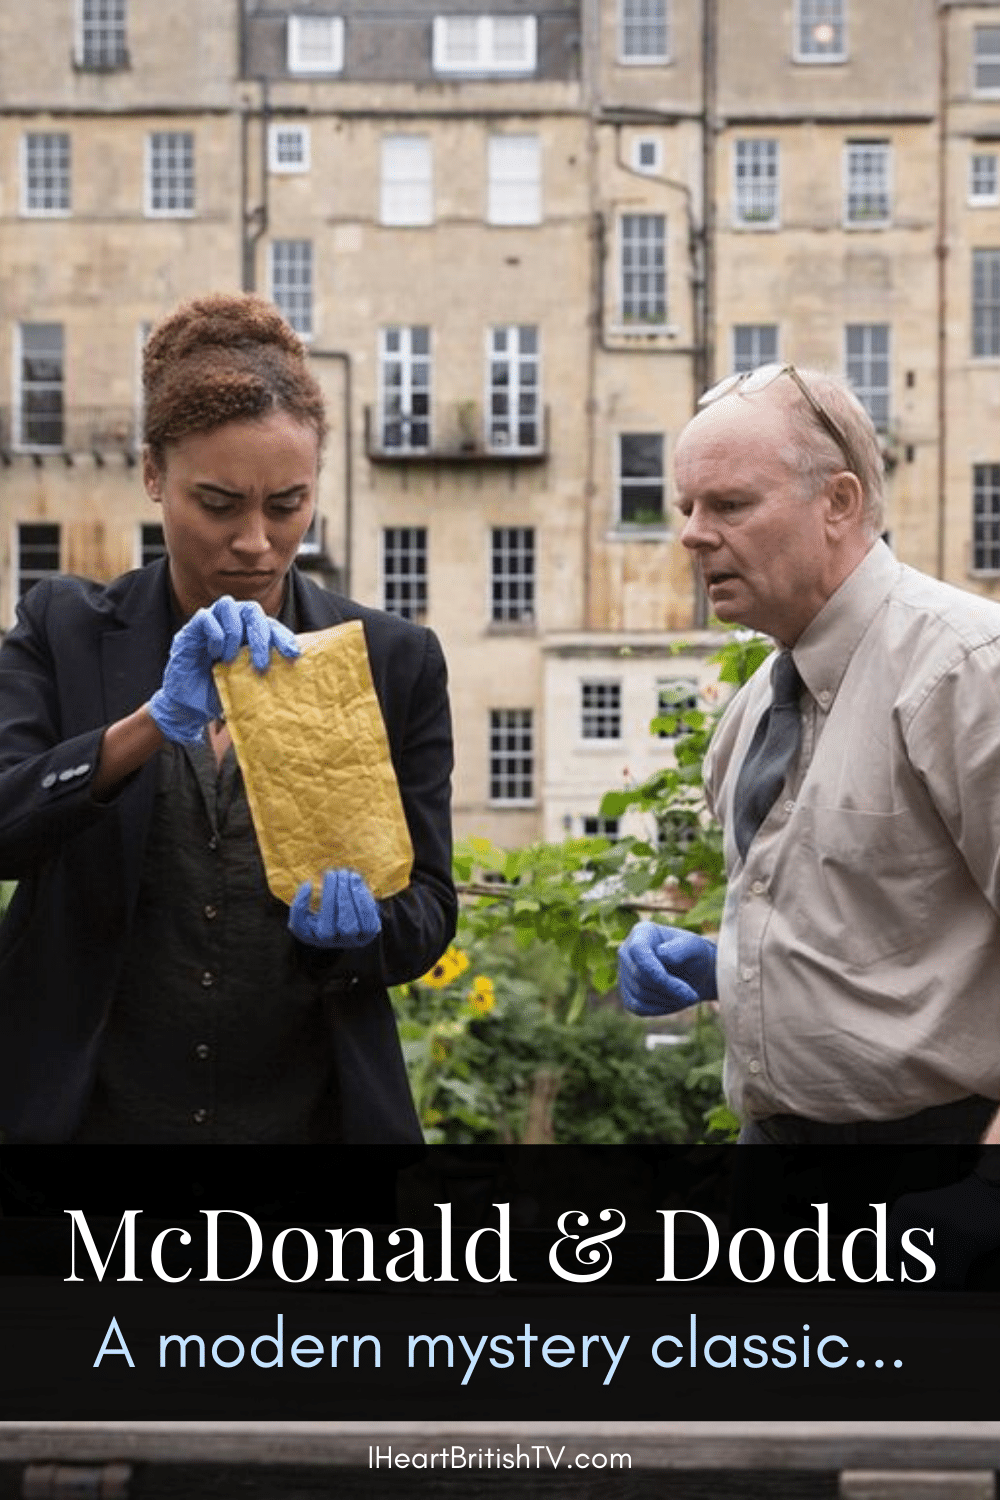 McDonald & Dodds Review: A Delightful & Scenic New British Mystery 7